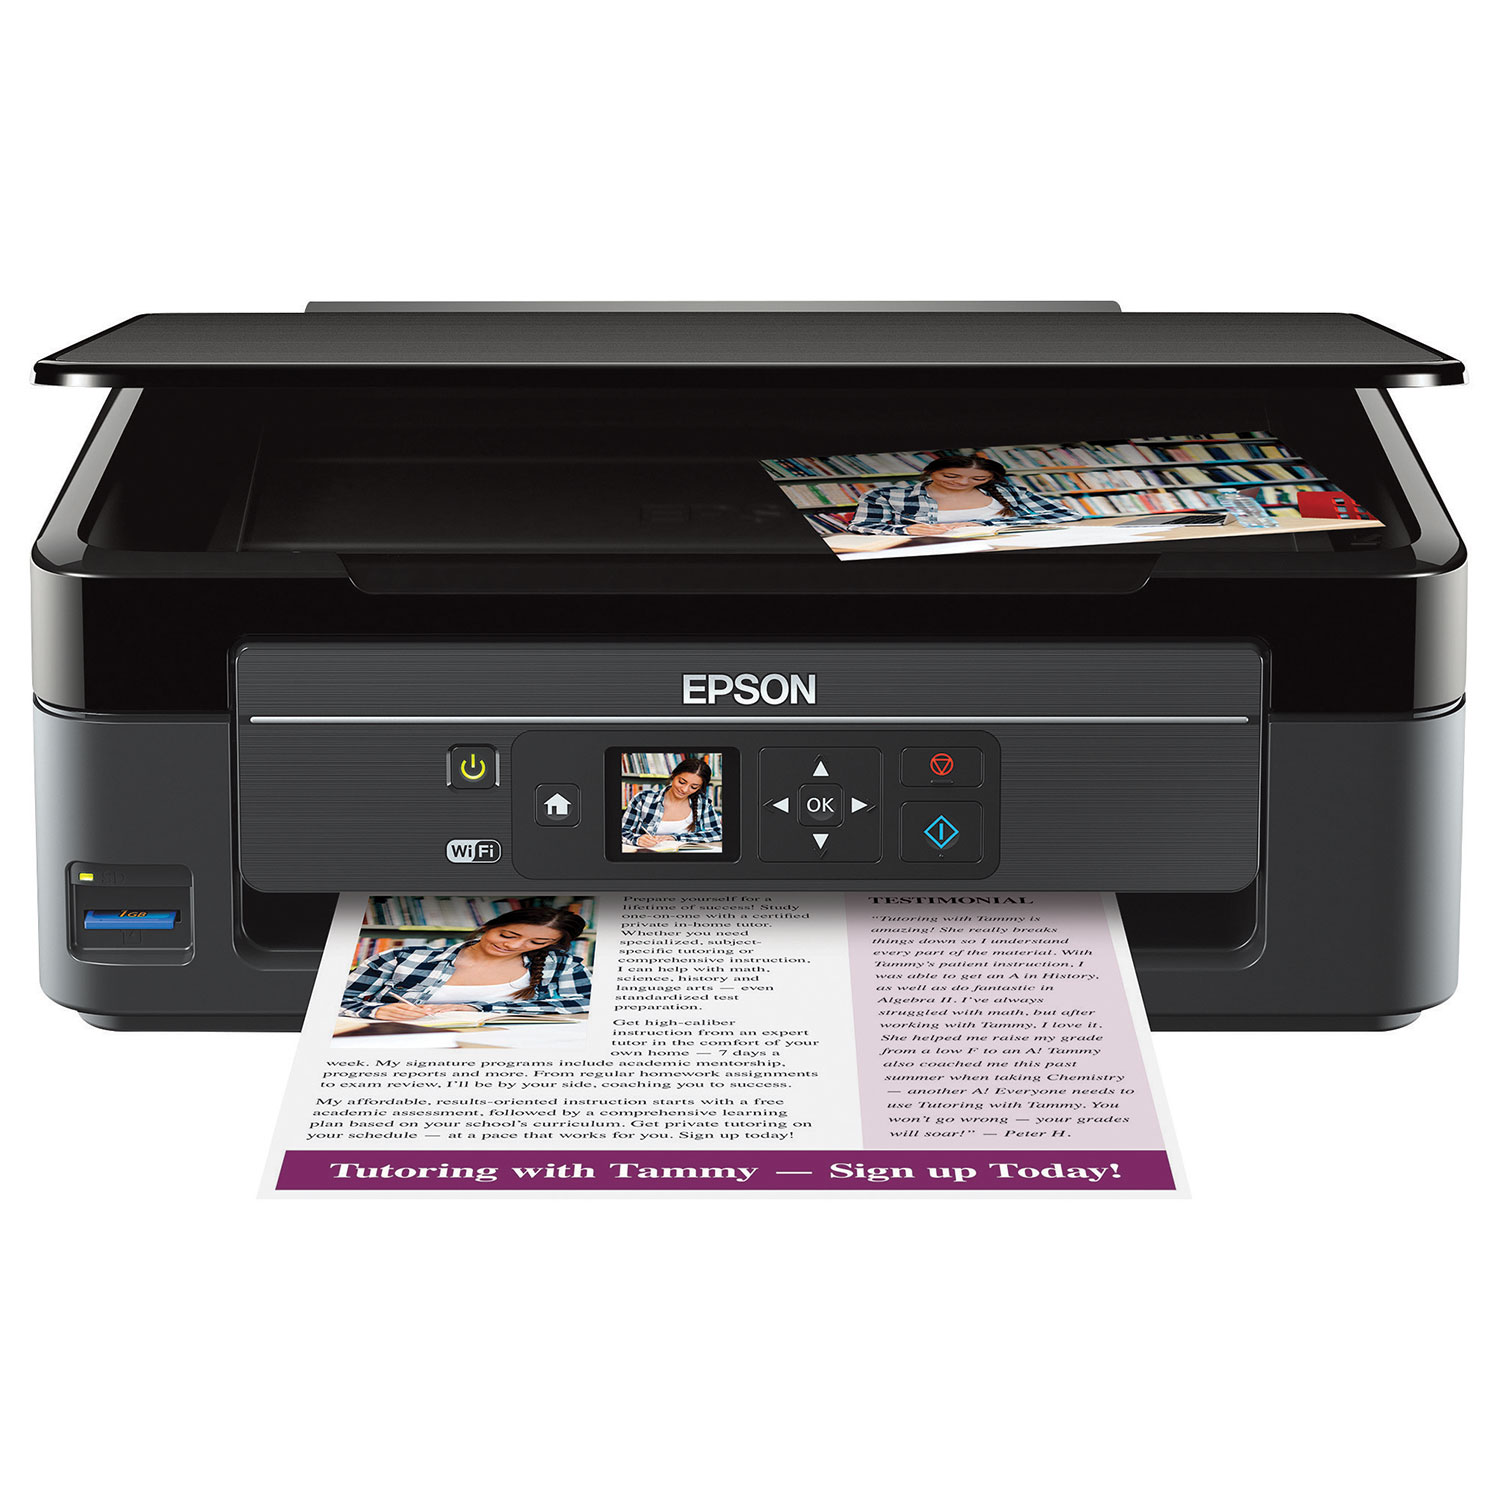 scanner laserjet one officemax all gallery hp a printers in by depot monochrome copier printer products office